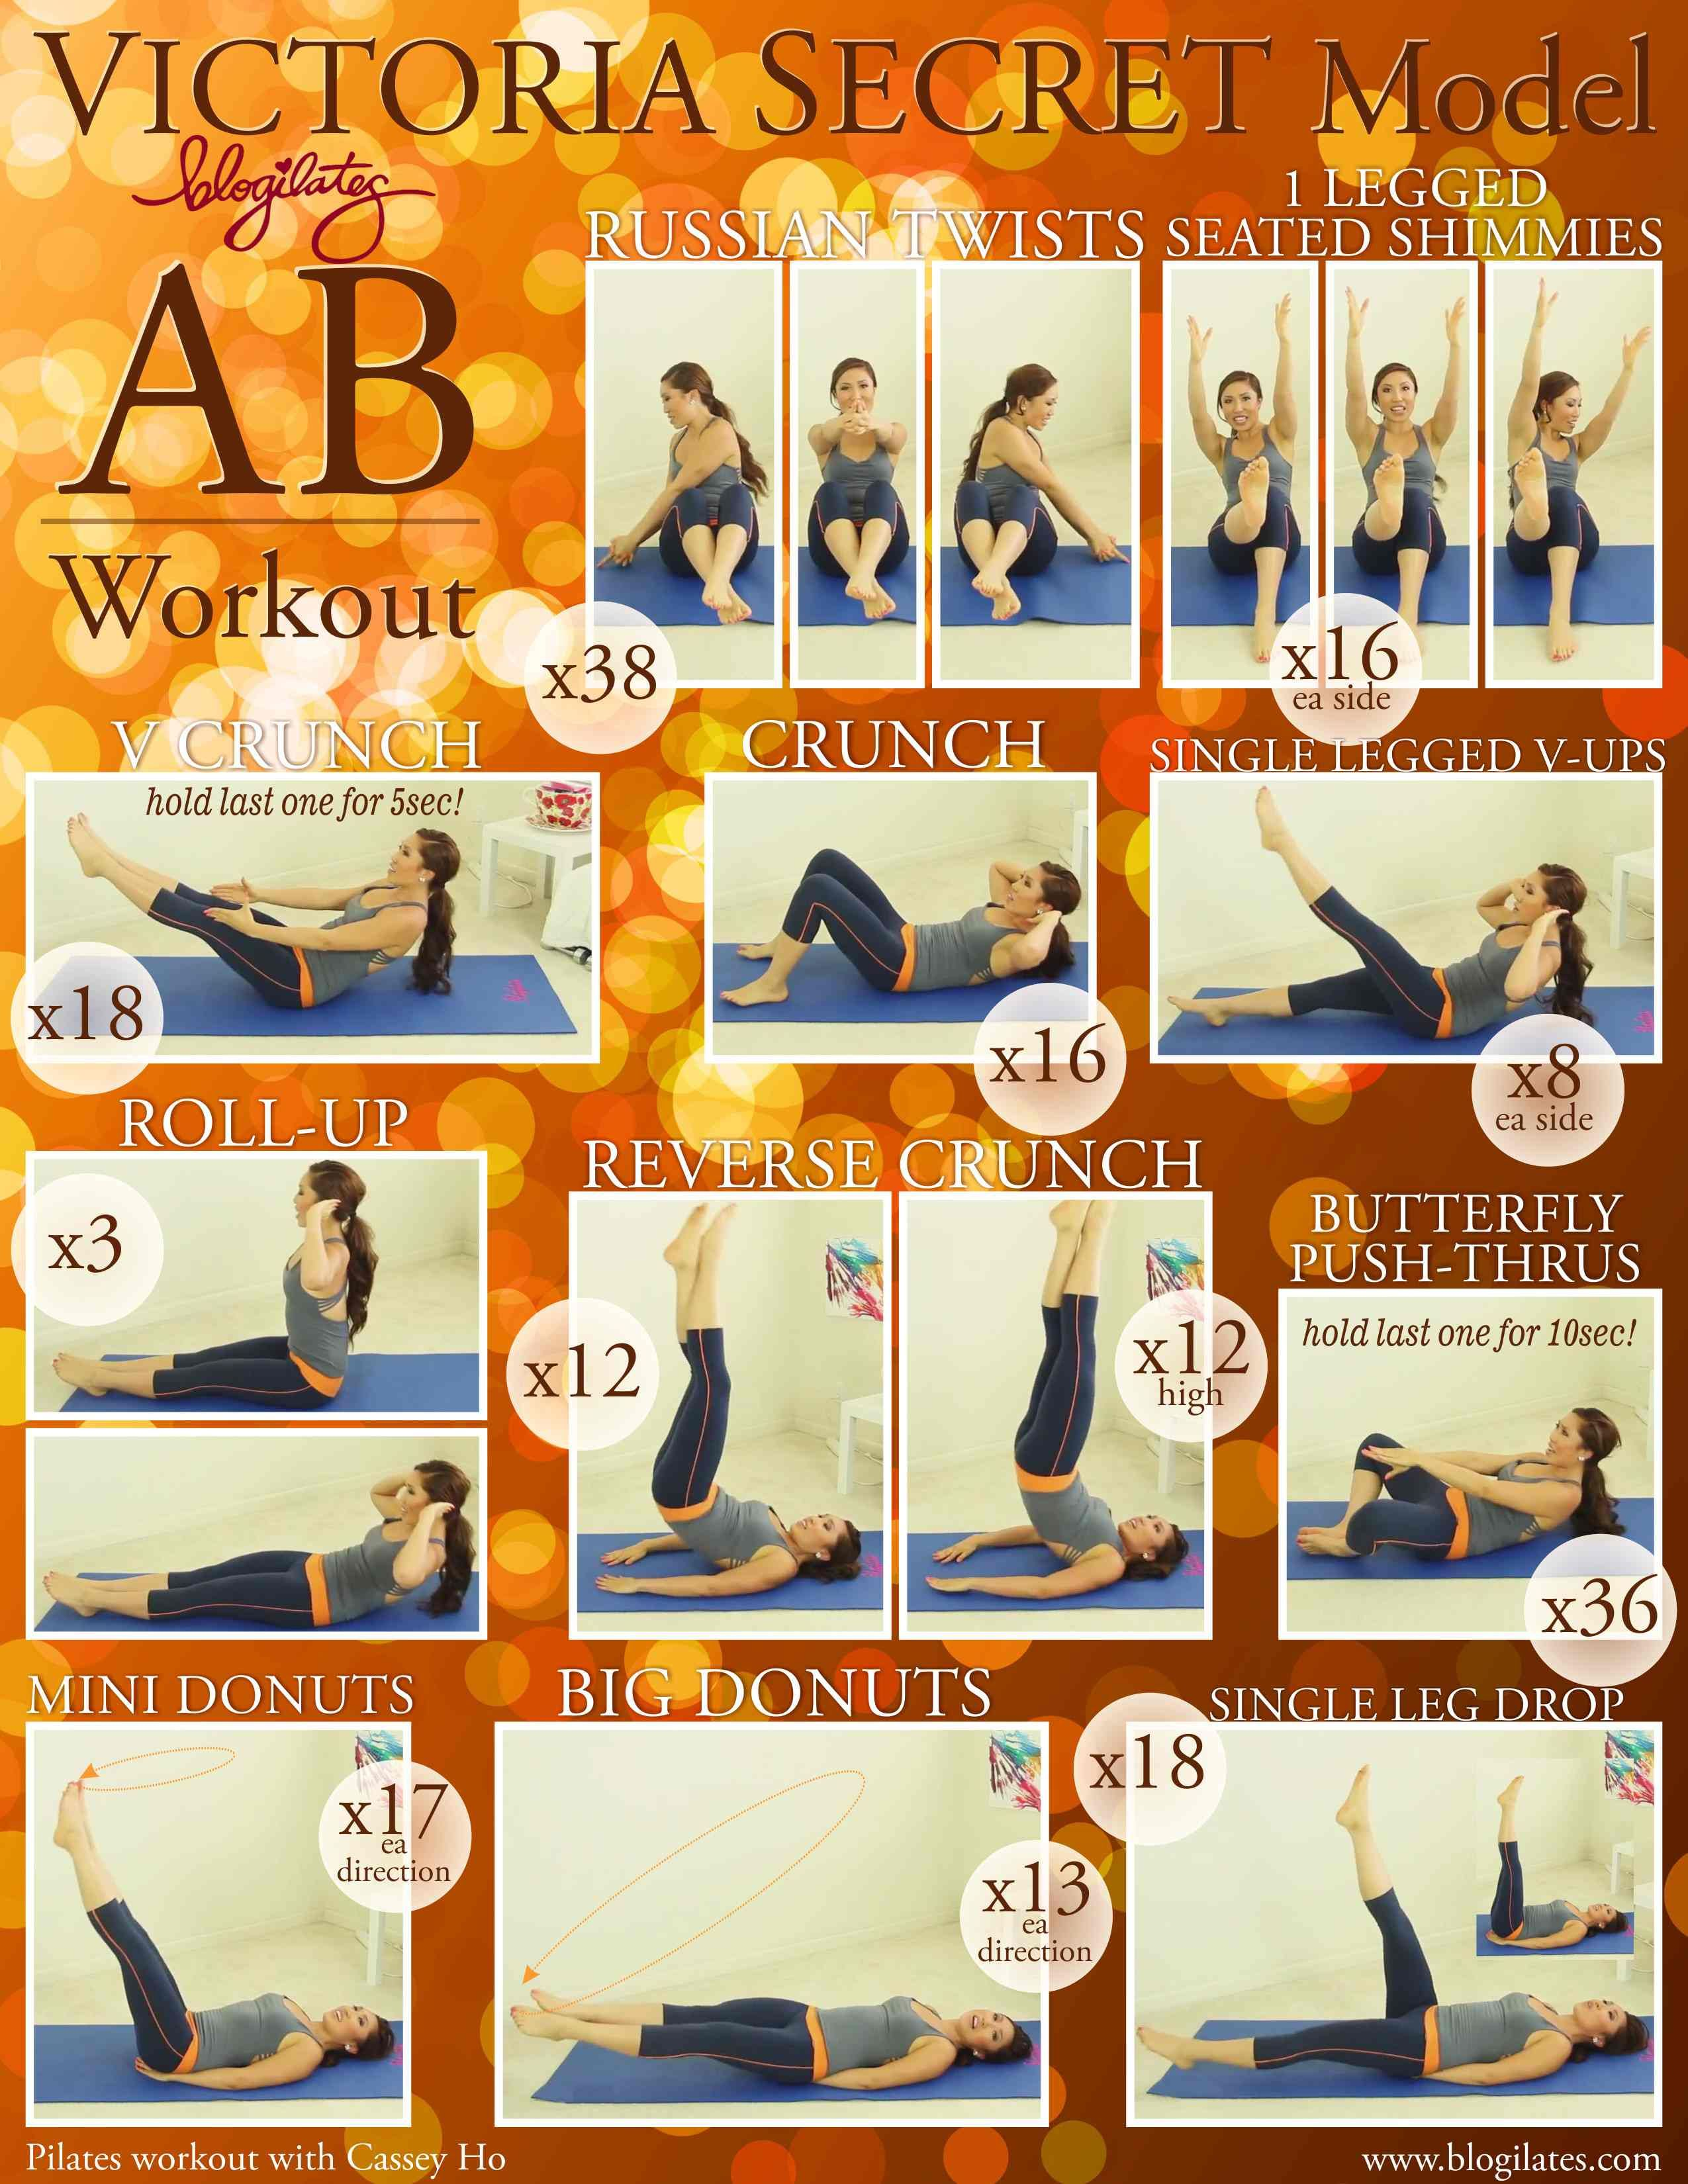 The cover model abs workout